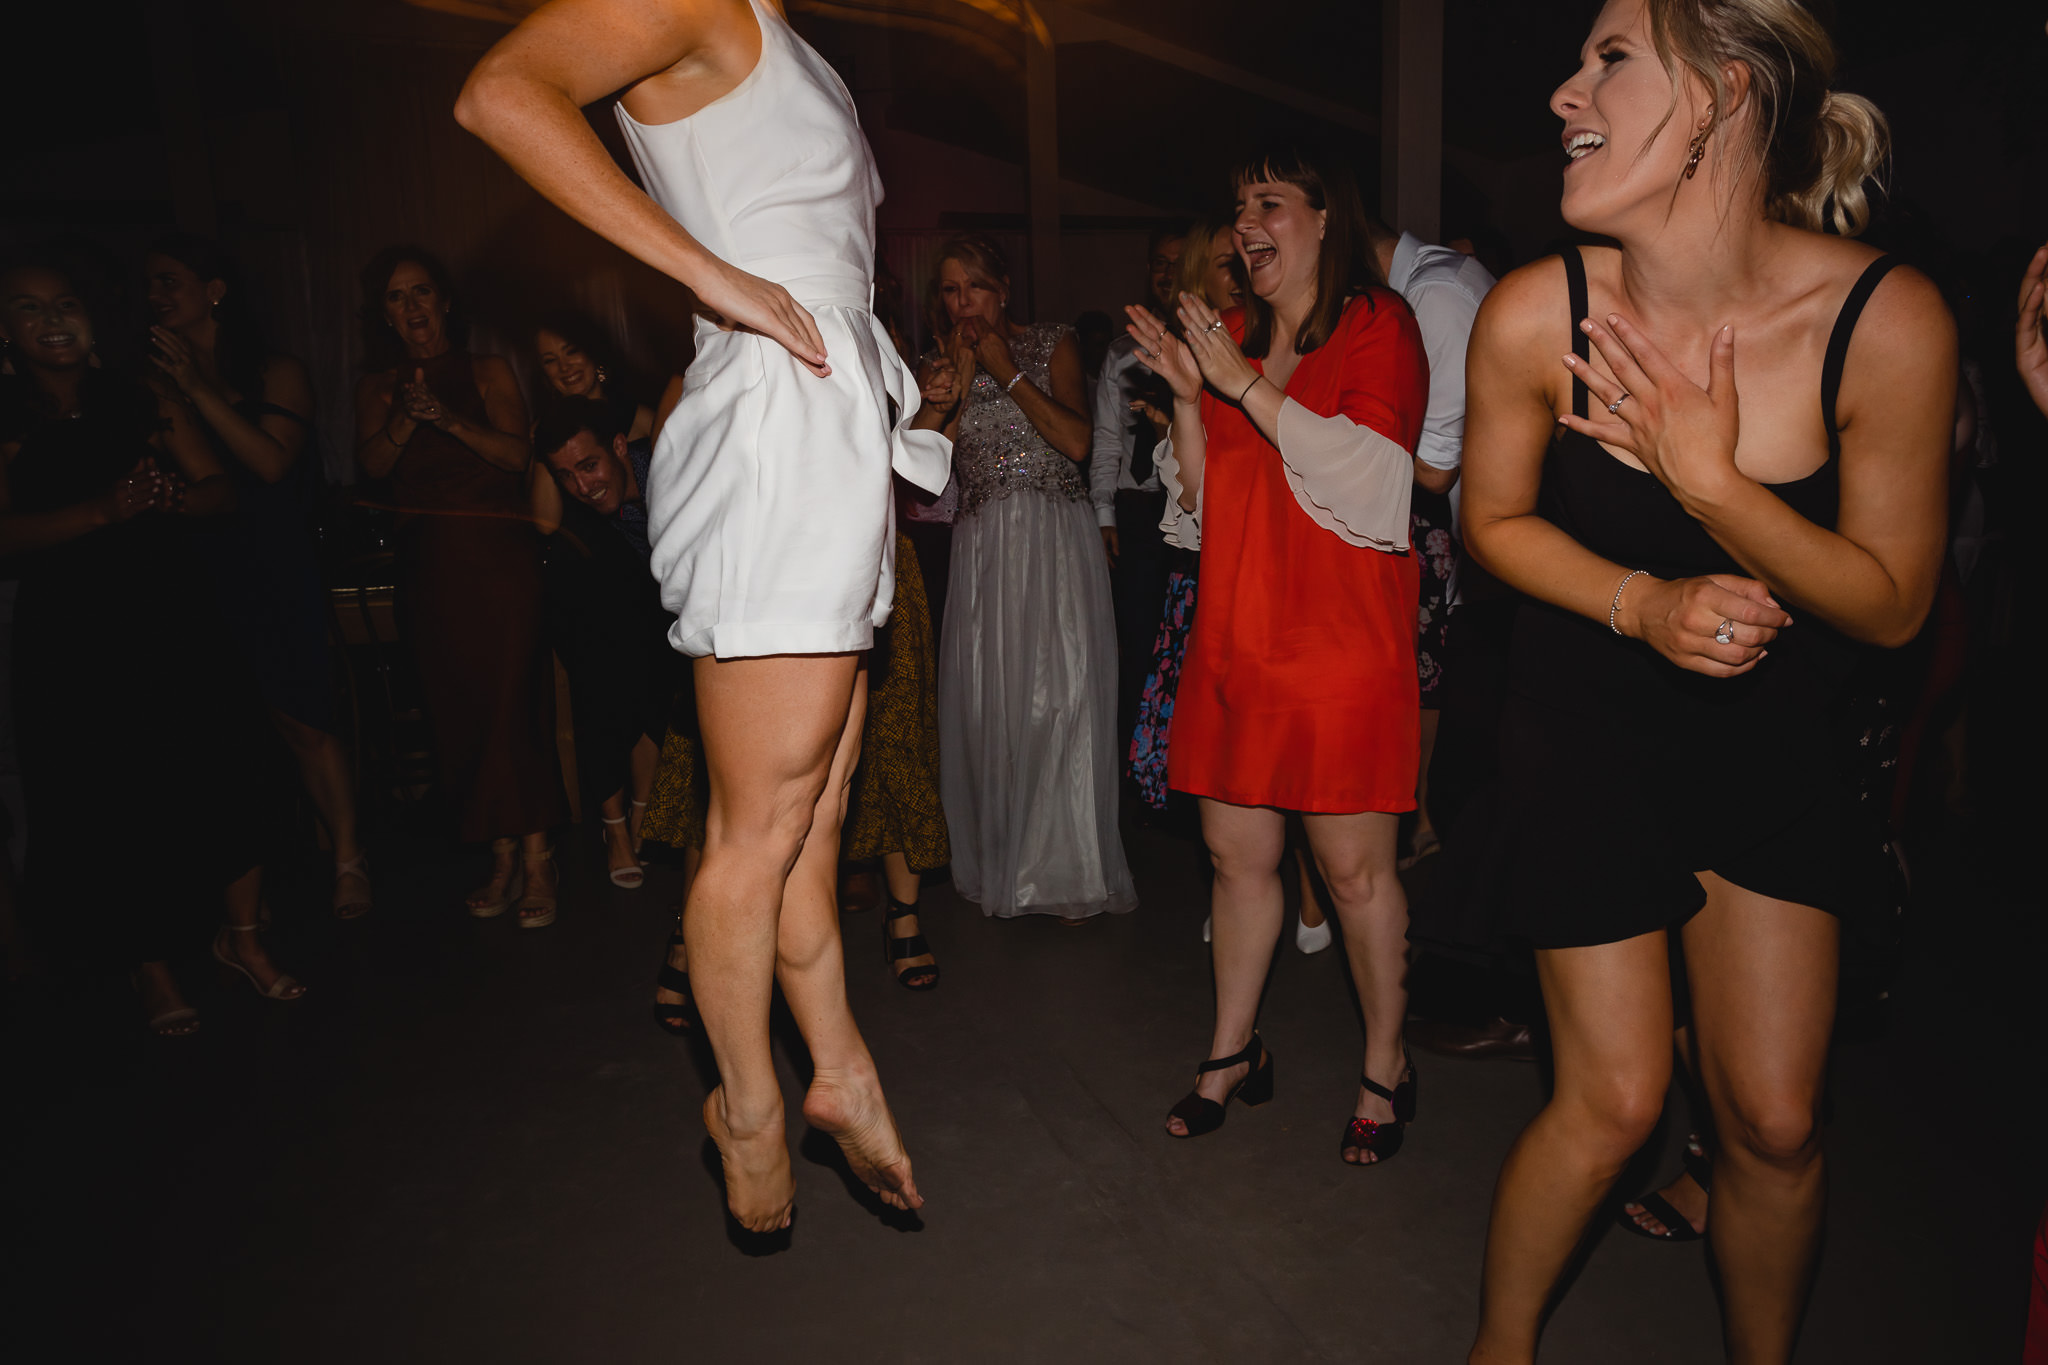 Bride in white wedding jumpsuit jumping in air doing Irish dancing at wedding